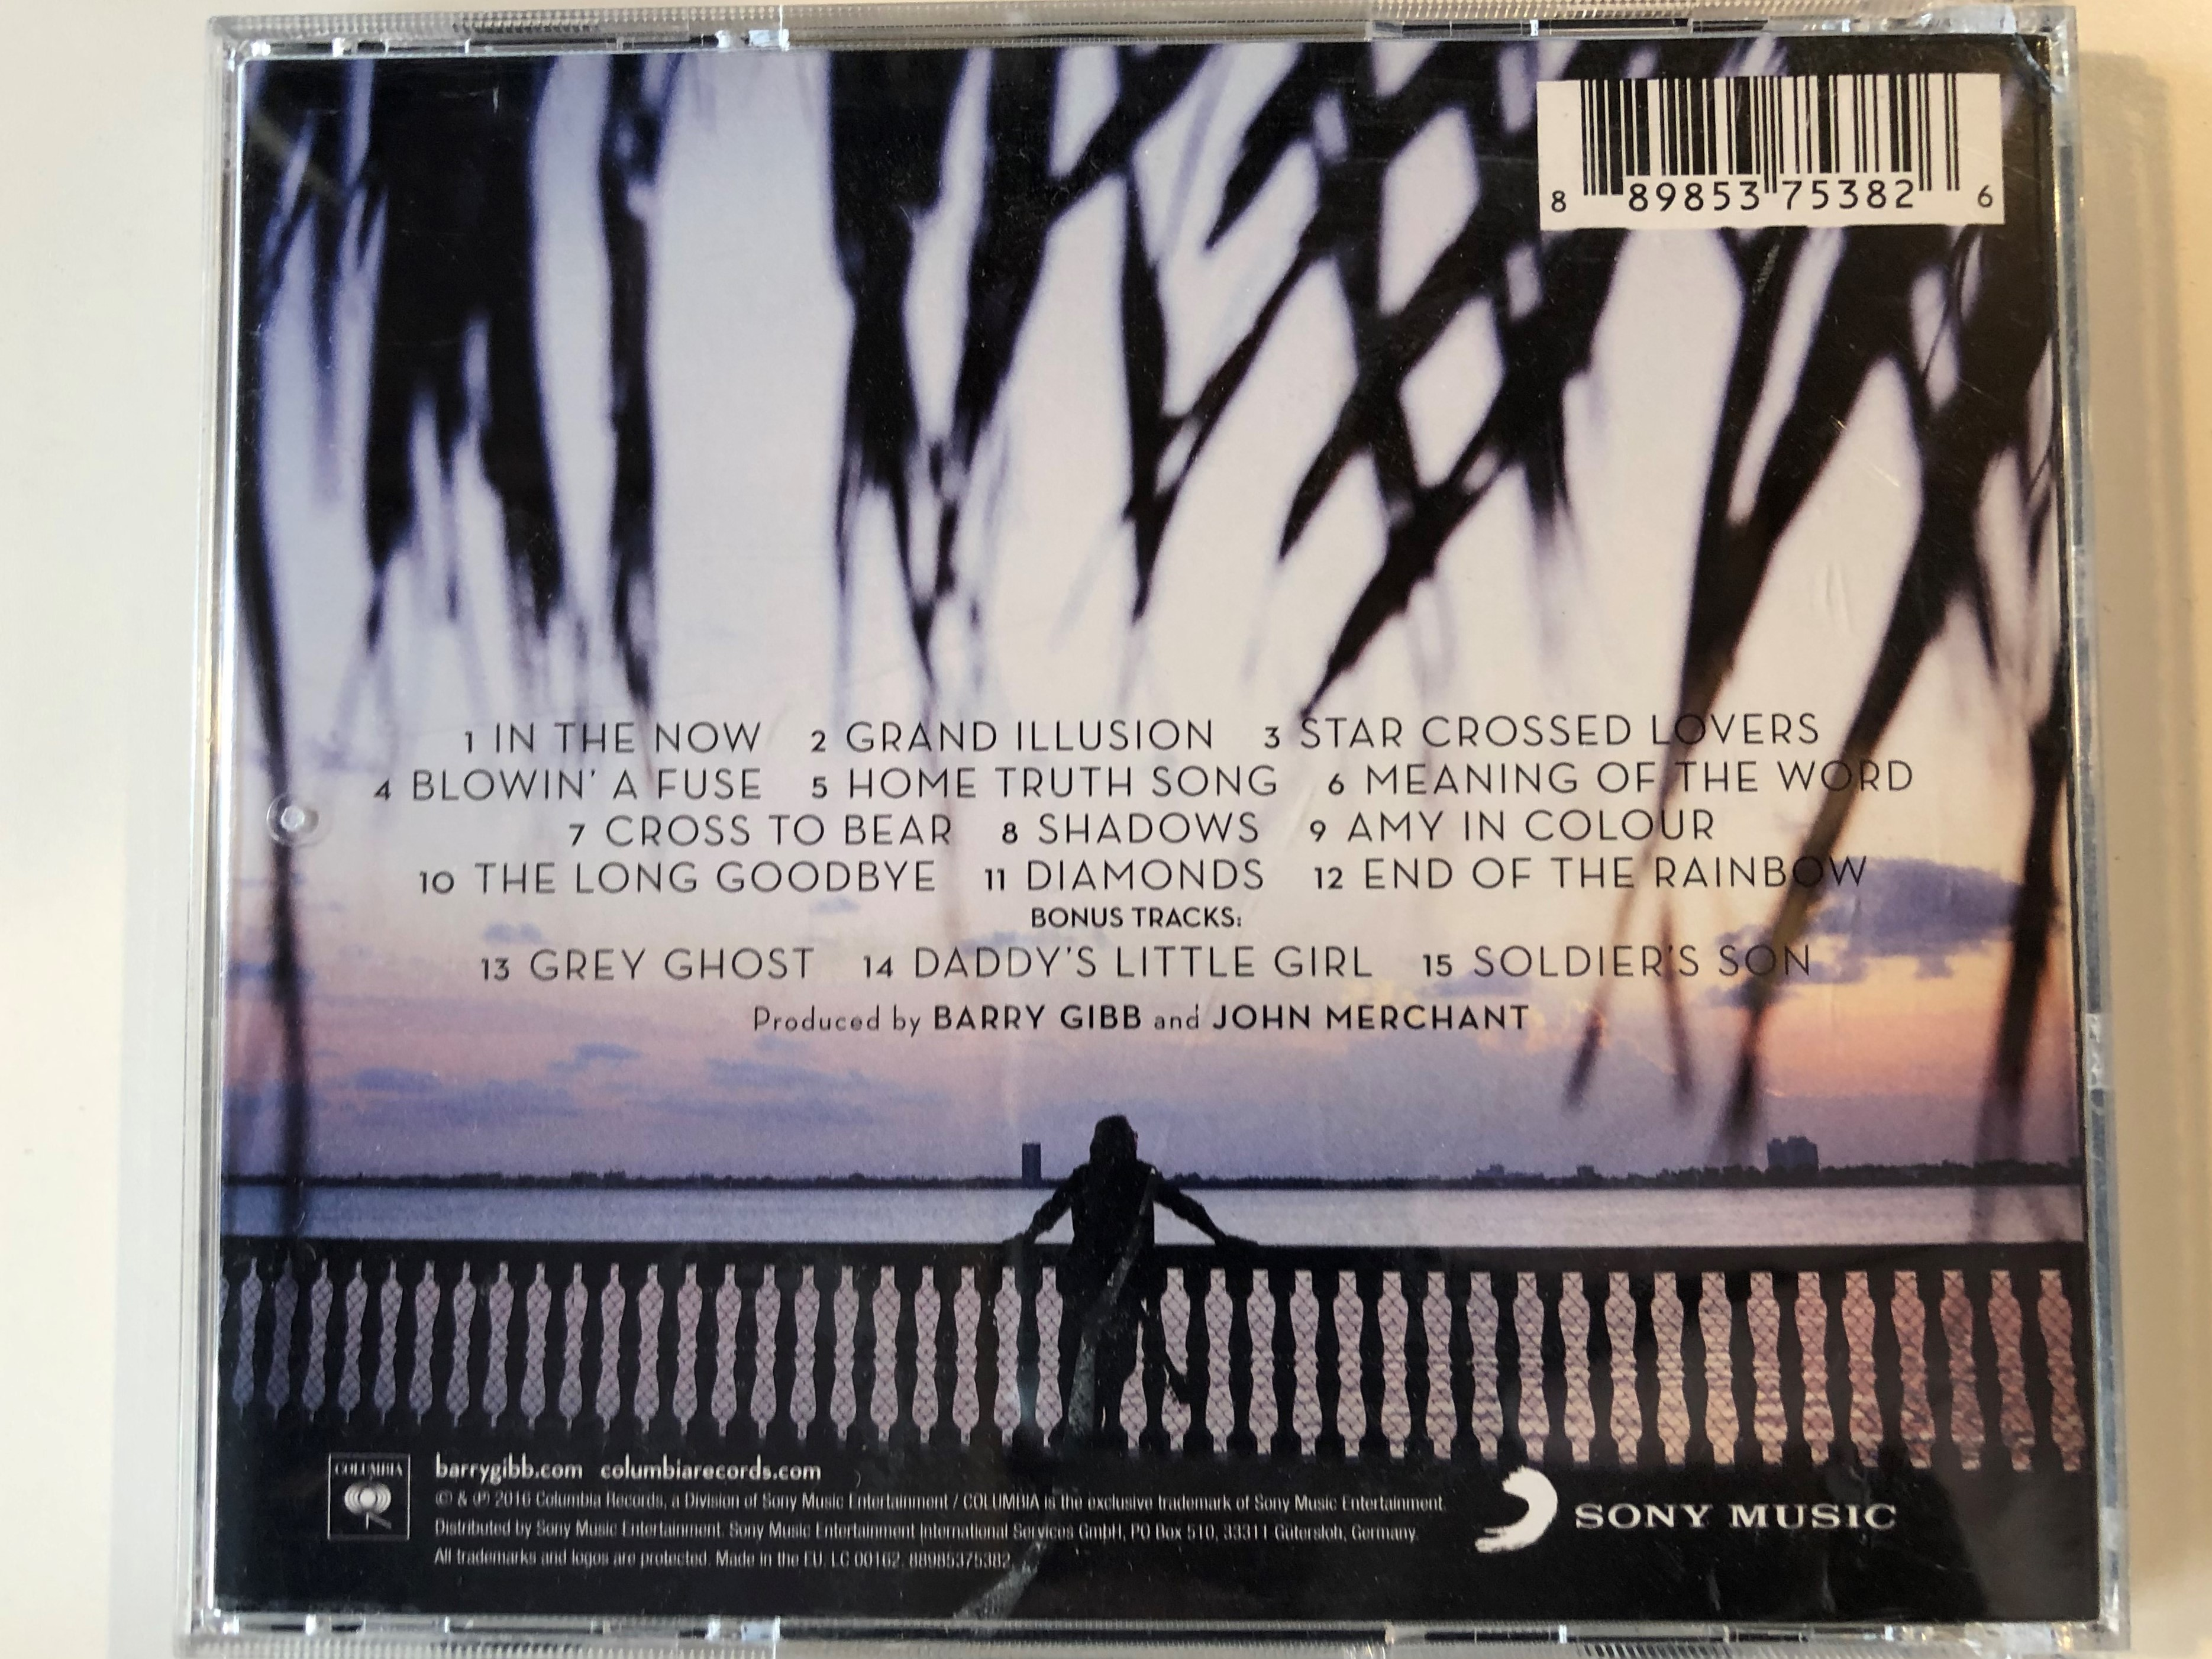 barry-gibb-in-the-now-columbia-audio-cd-2016-88985375382-4-.jpg